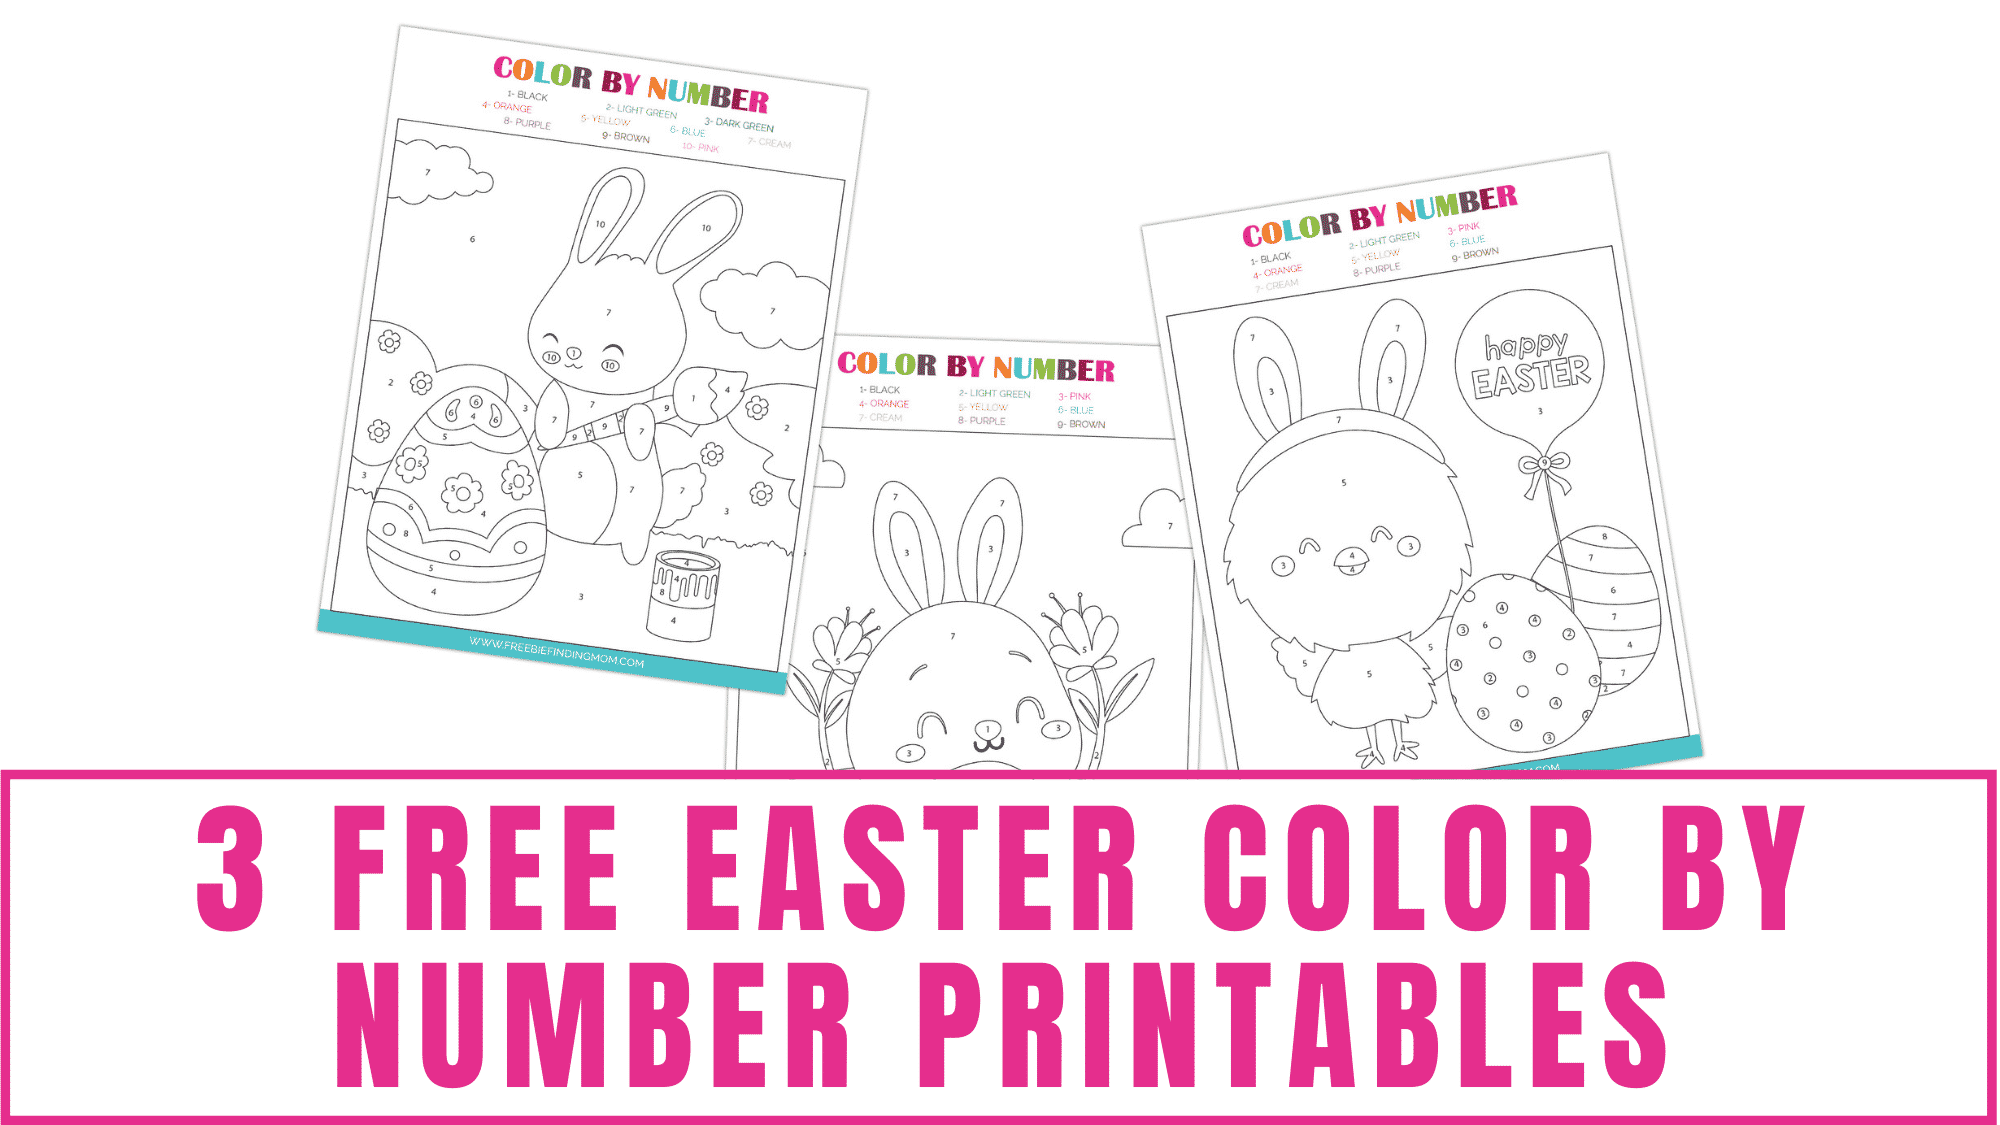 It doesn't have to be Easter or even spring to enjoy these free Easter color by number printables.